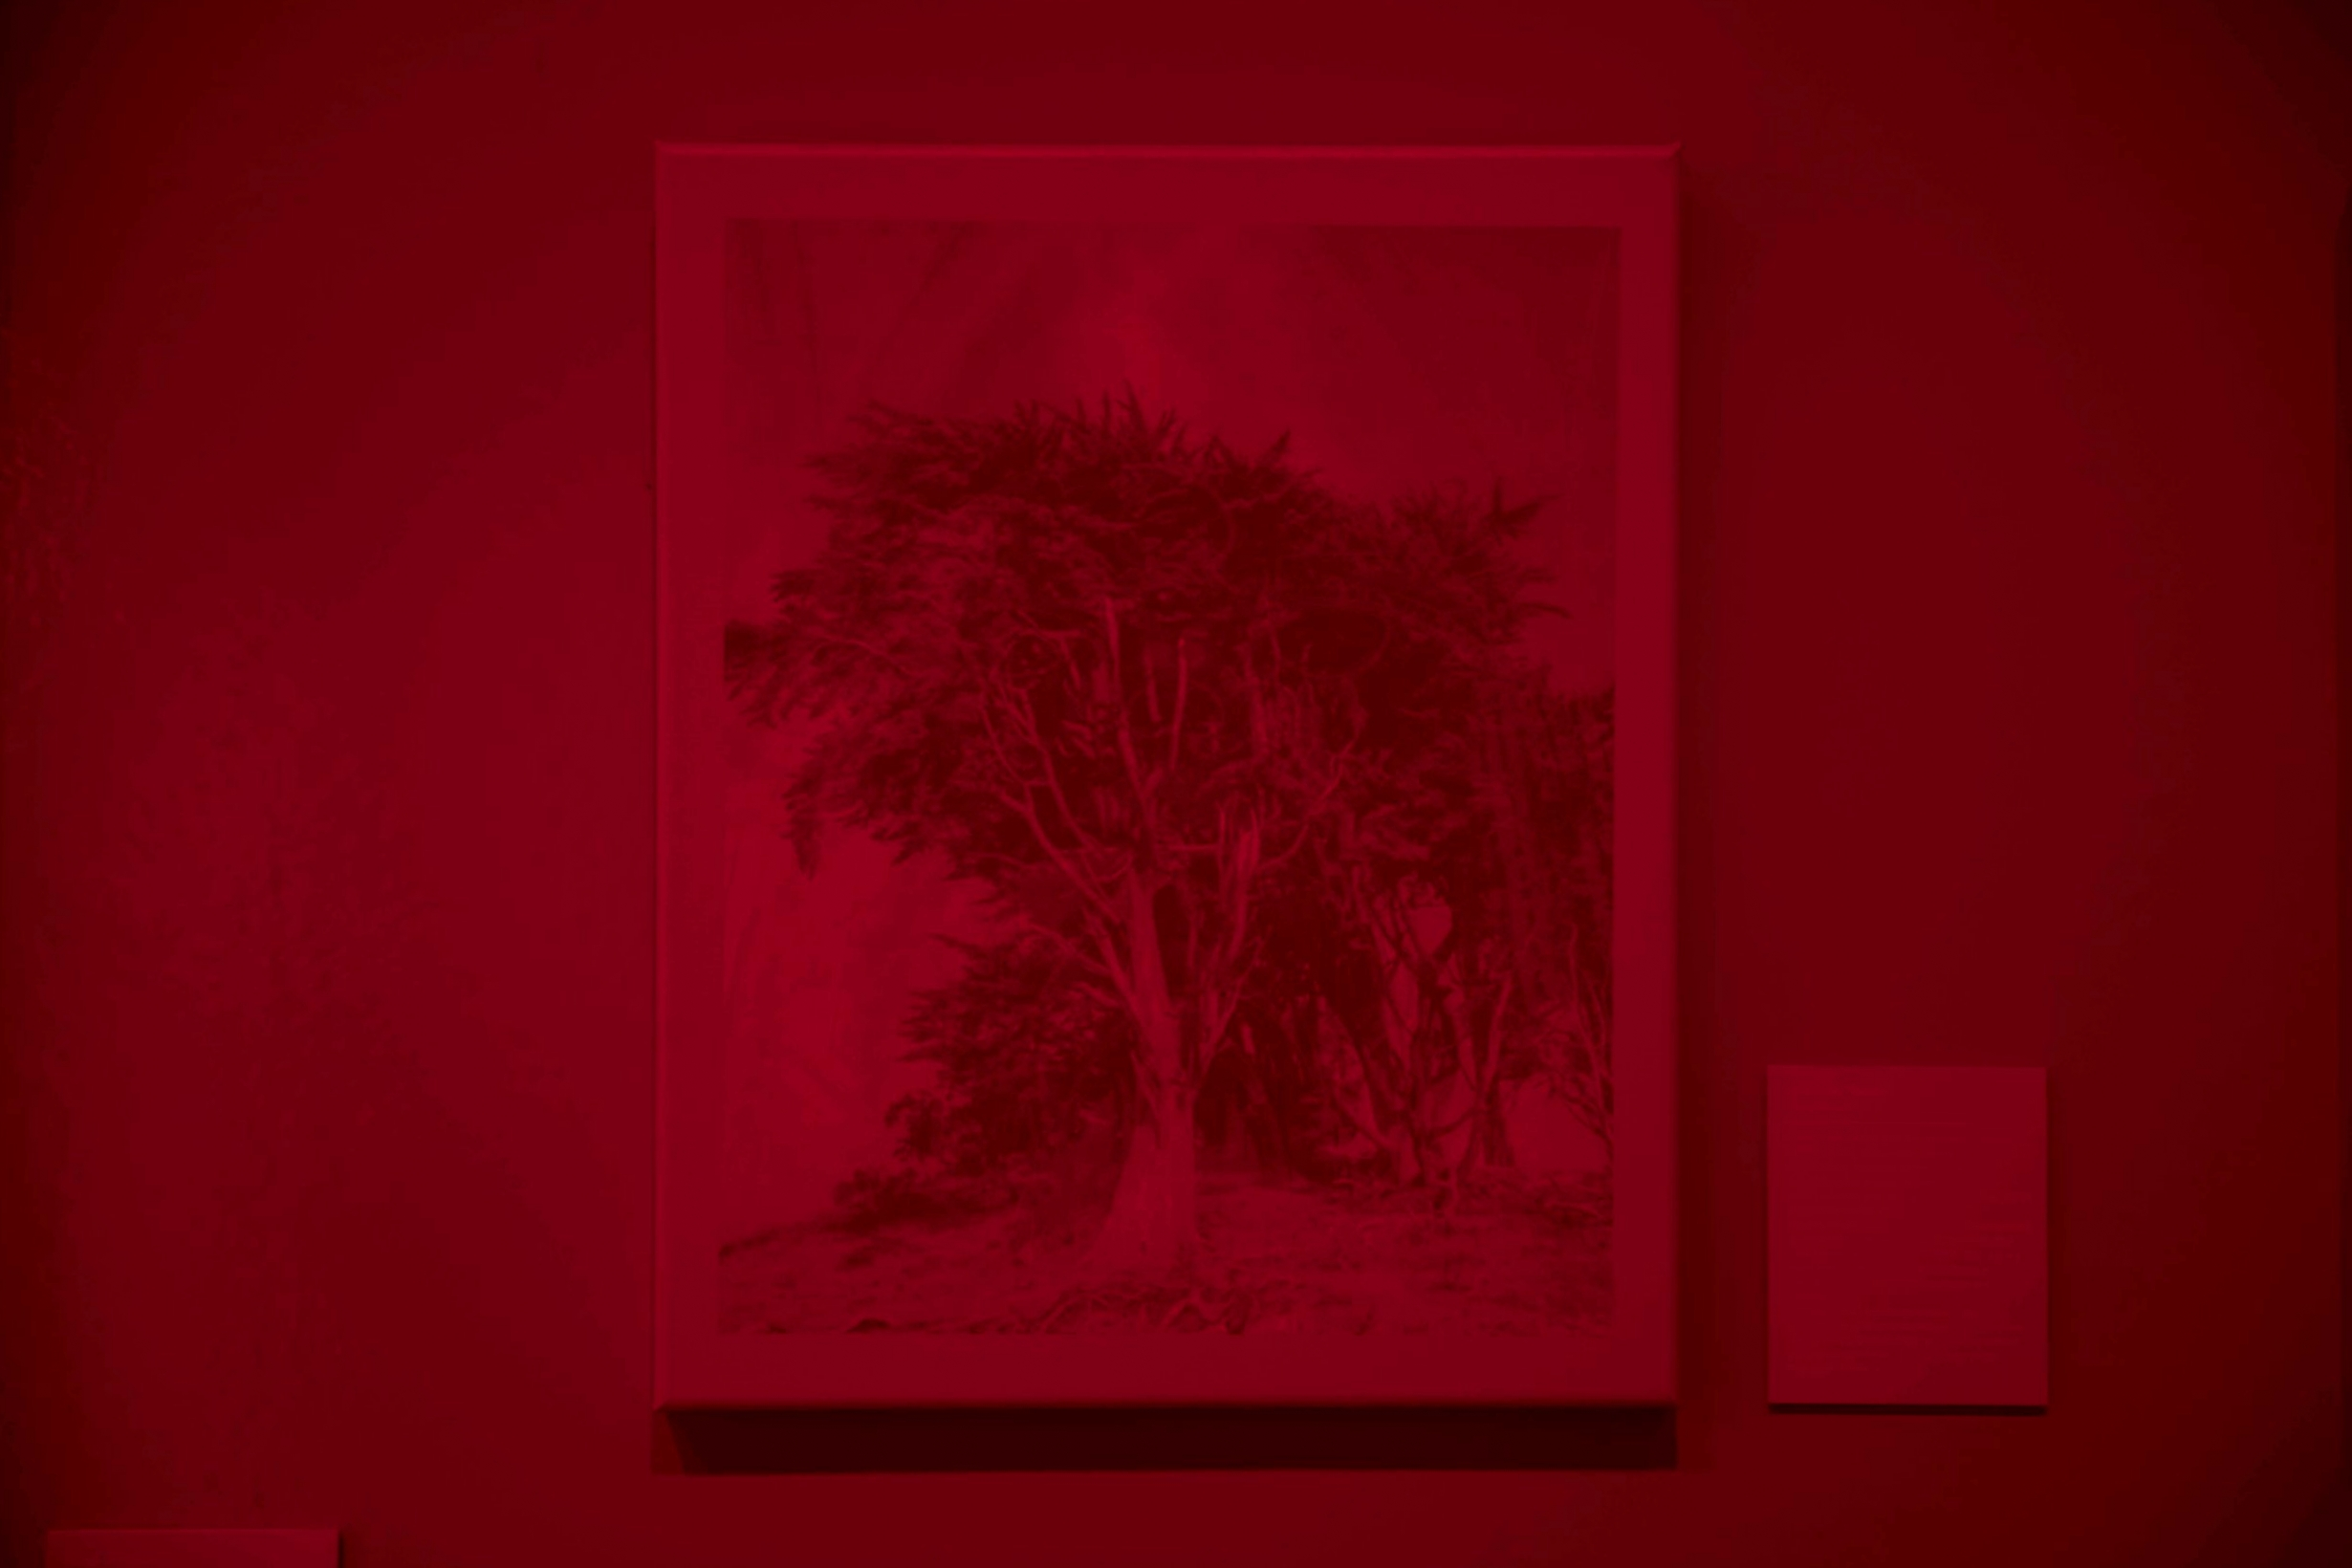 Red Room CHI_C1_an8i0564.jpg